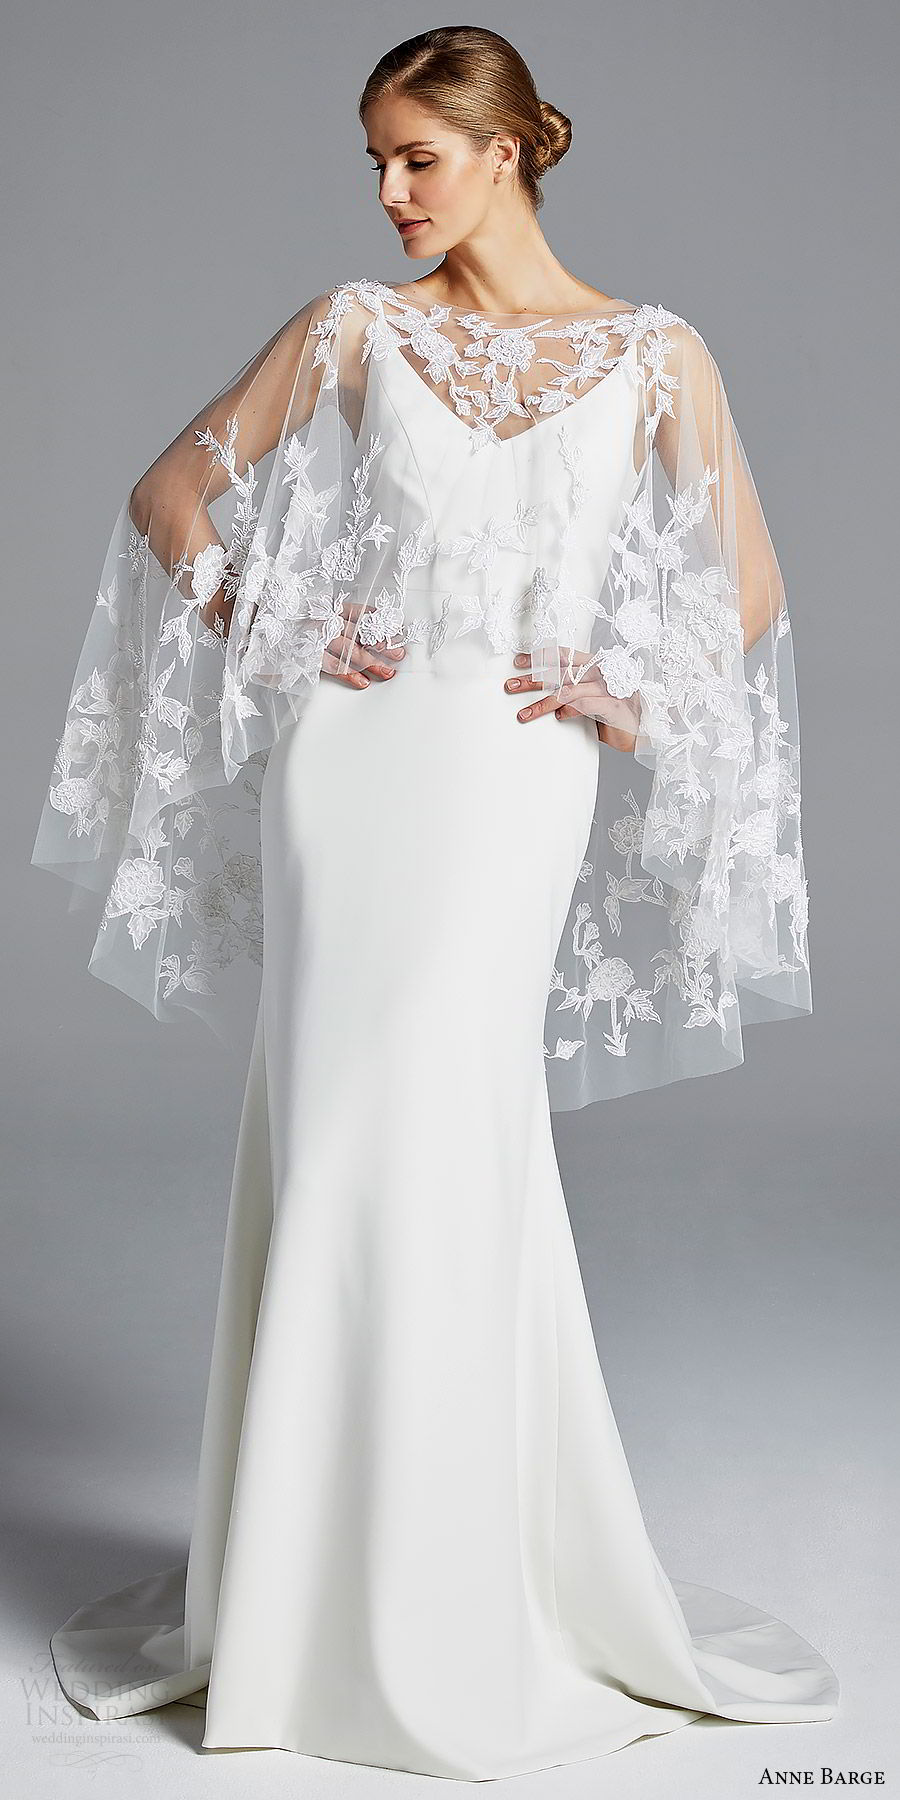 anne barge bridal spring 2019 sleeveless straps v neck sheer capelete sheath wedding dress (elle) mv sweep train boho chic romantic